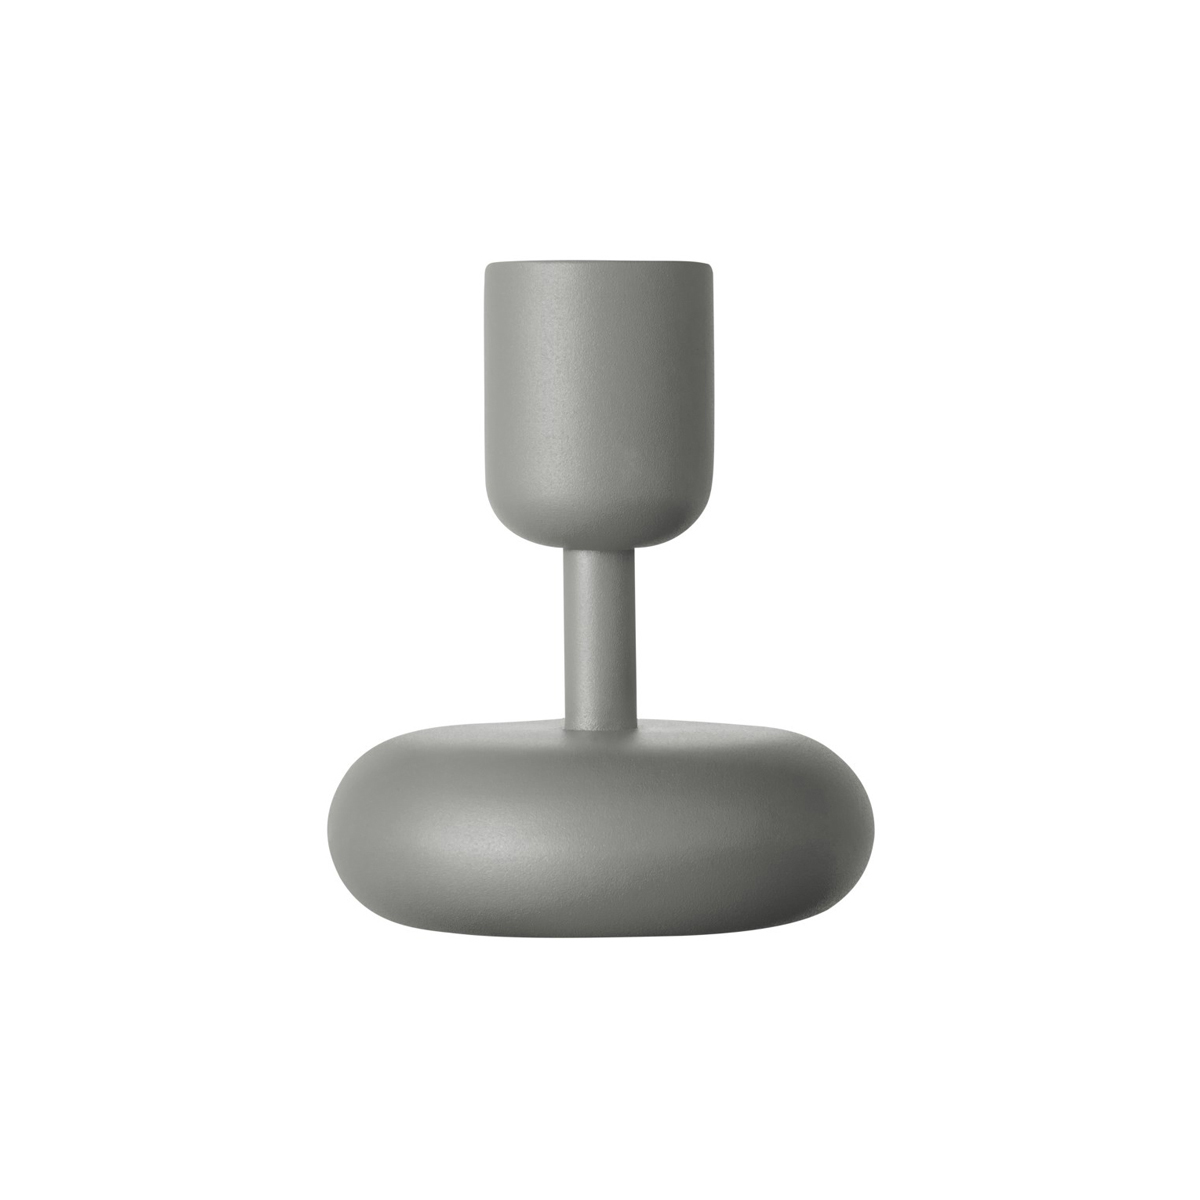 Nappula_candle_holder_107mm_grey